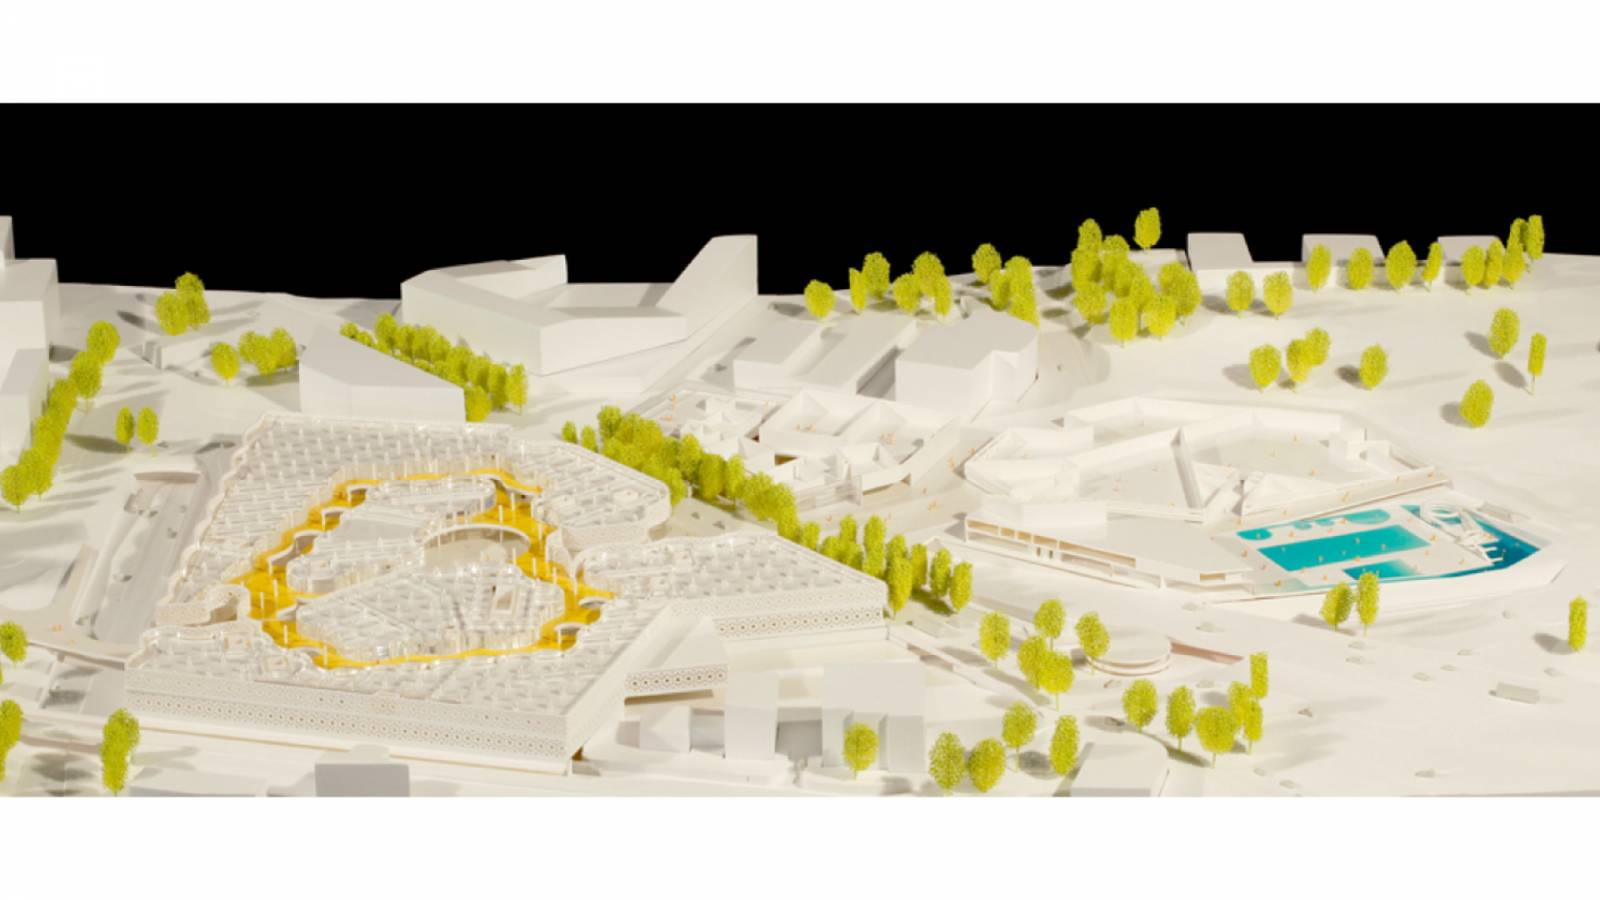 MODEL SHOPPING - Økern Centre - SPOL Architects